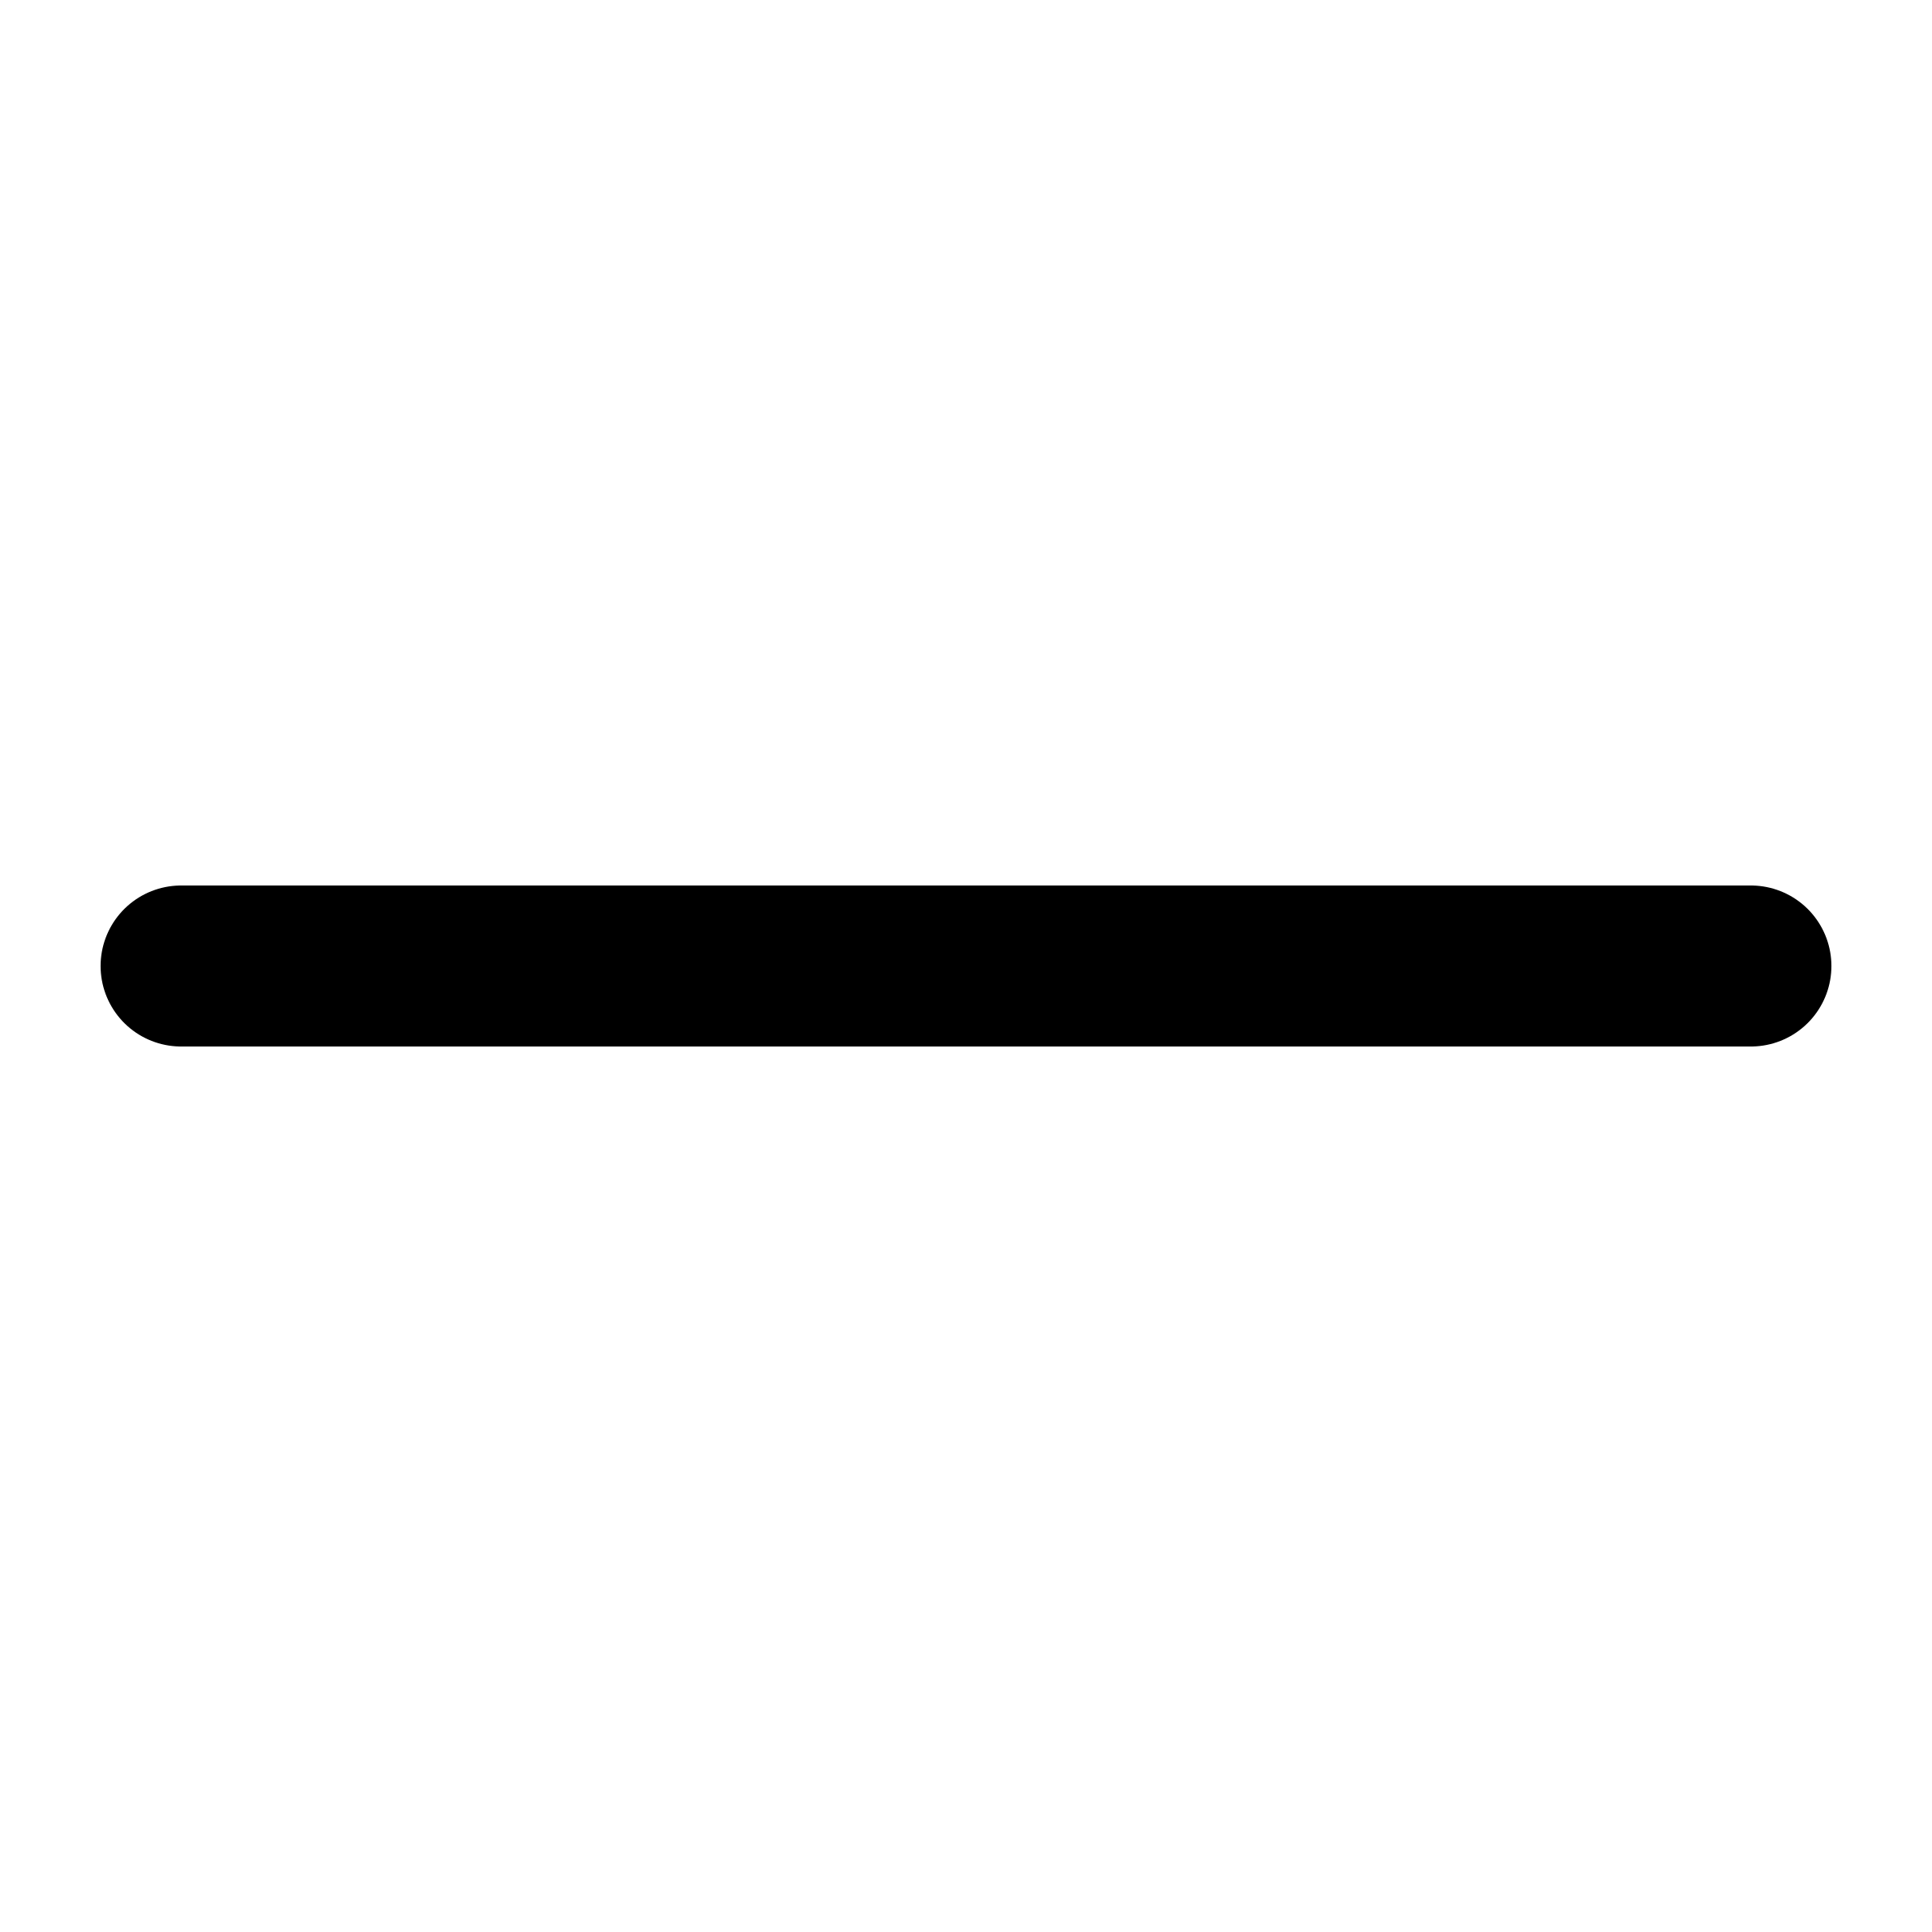 Line Png - This free Icons Png design of primary line normal begin ...